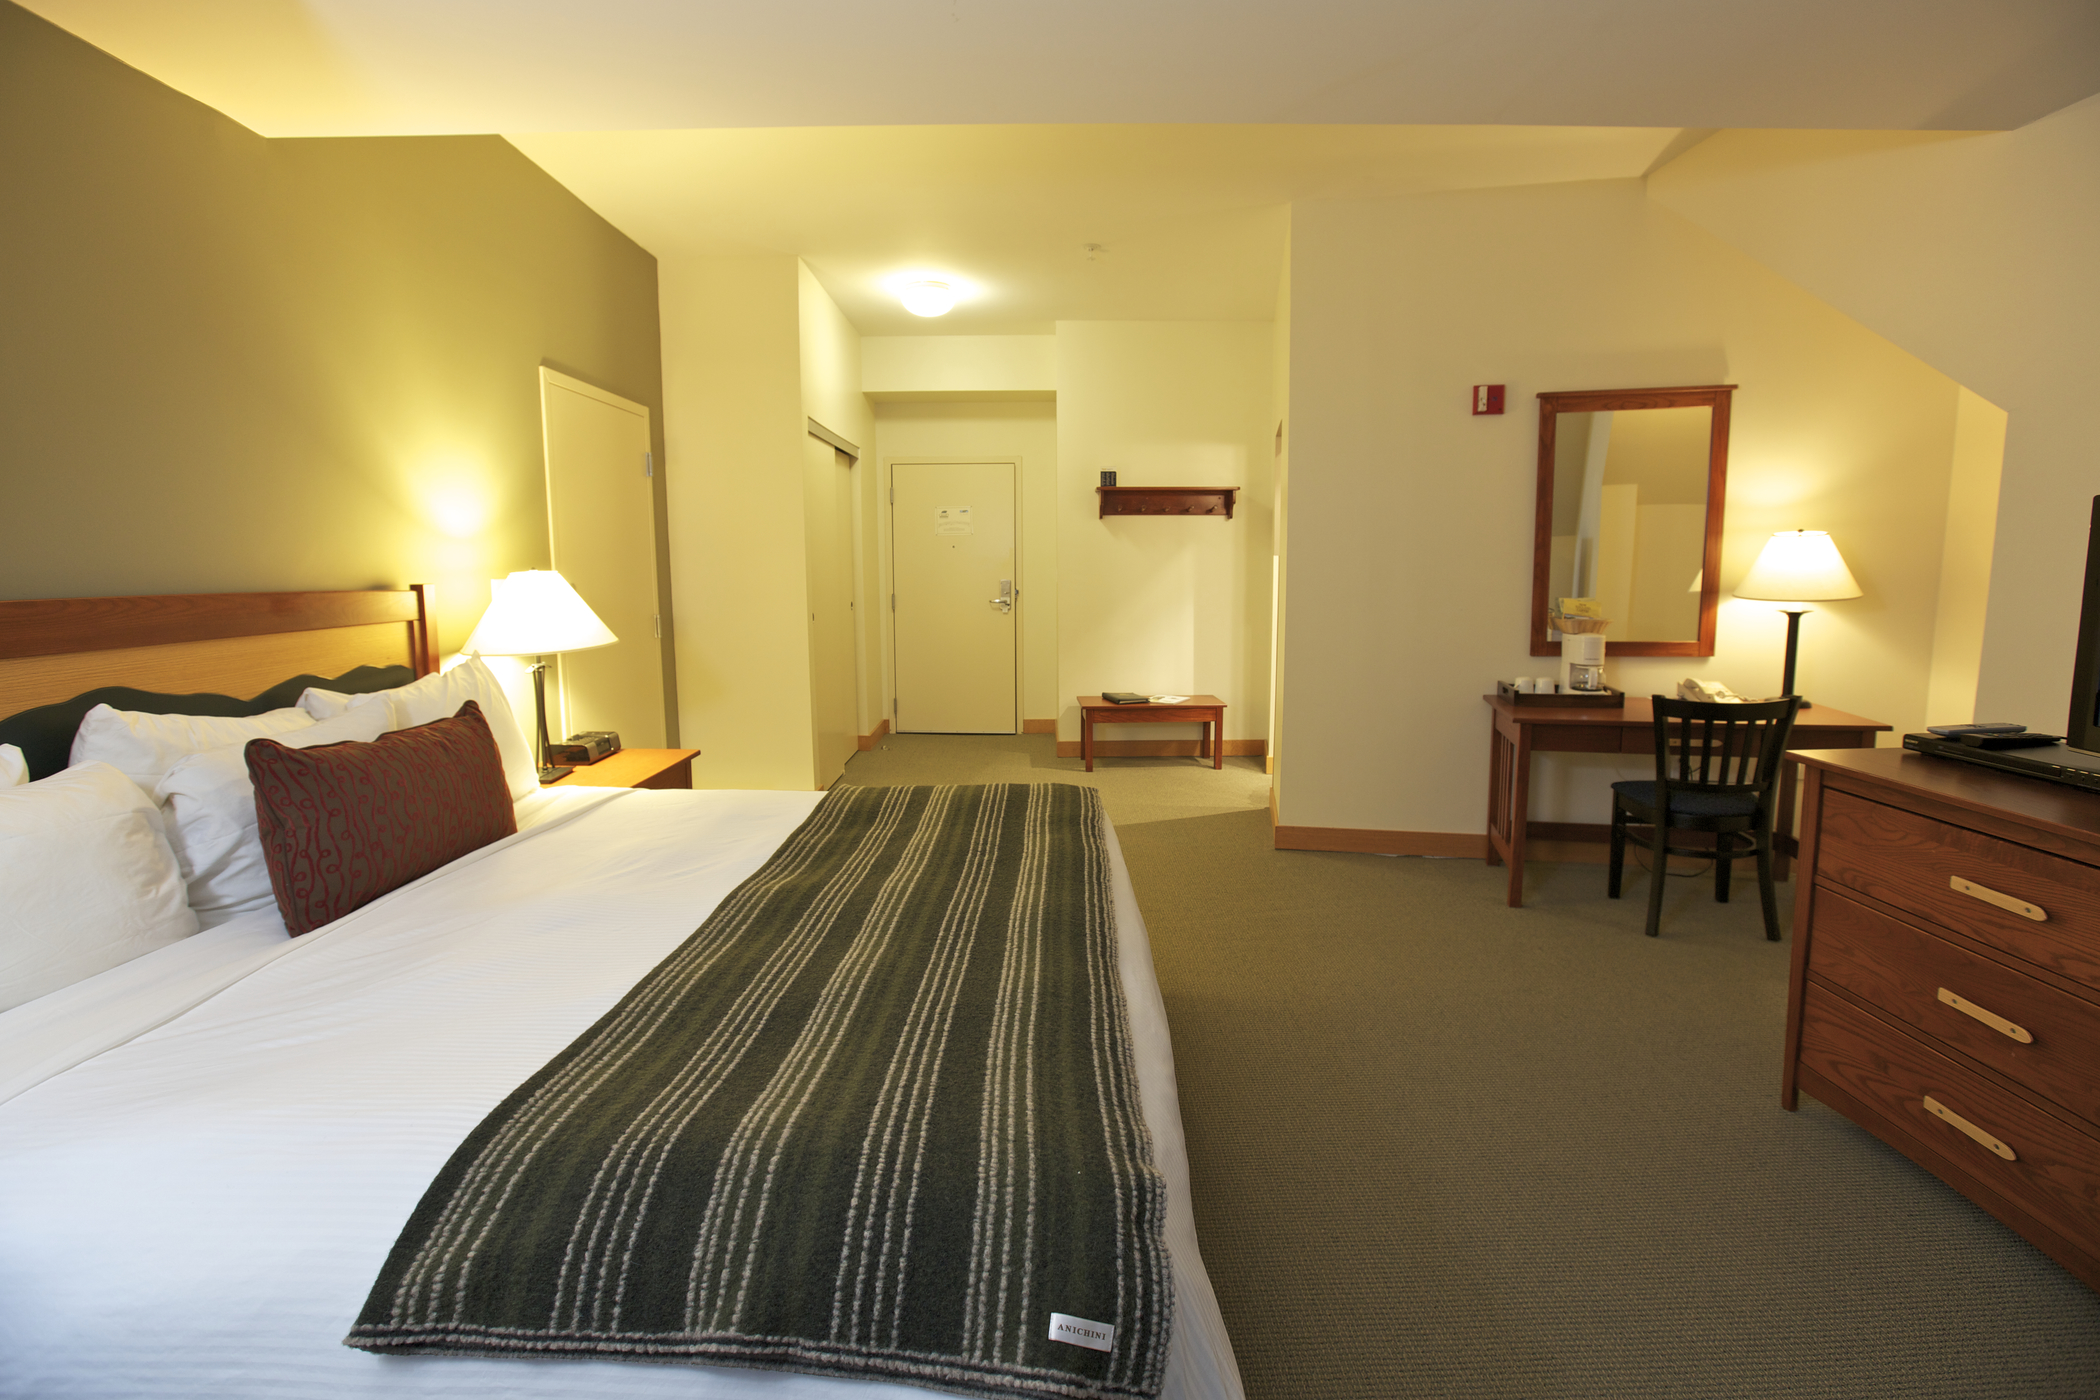 Hotel Room (1 King or 2 Queen Beds)